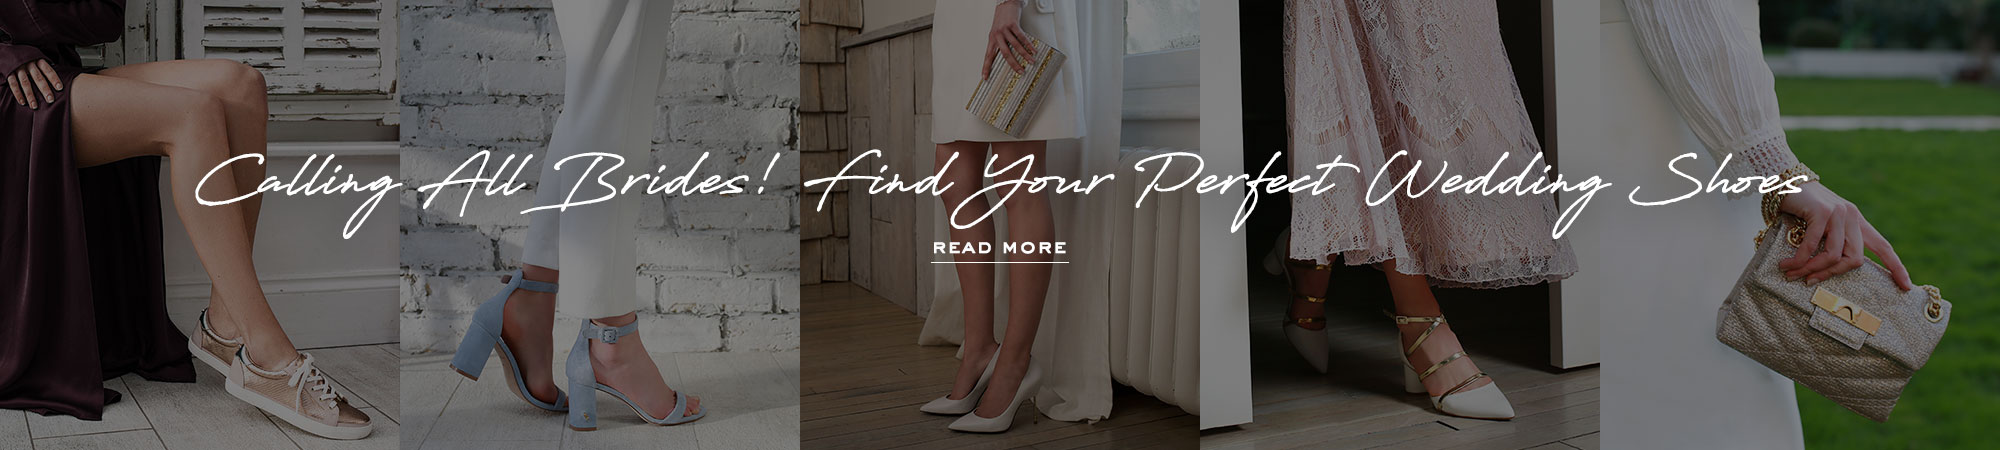 Calling All Brides! Find Your Perfect Wedding Shoes